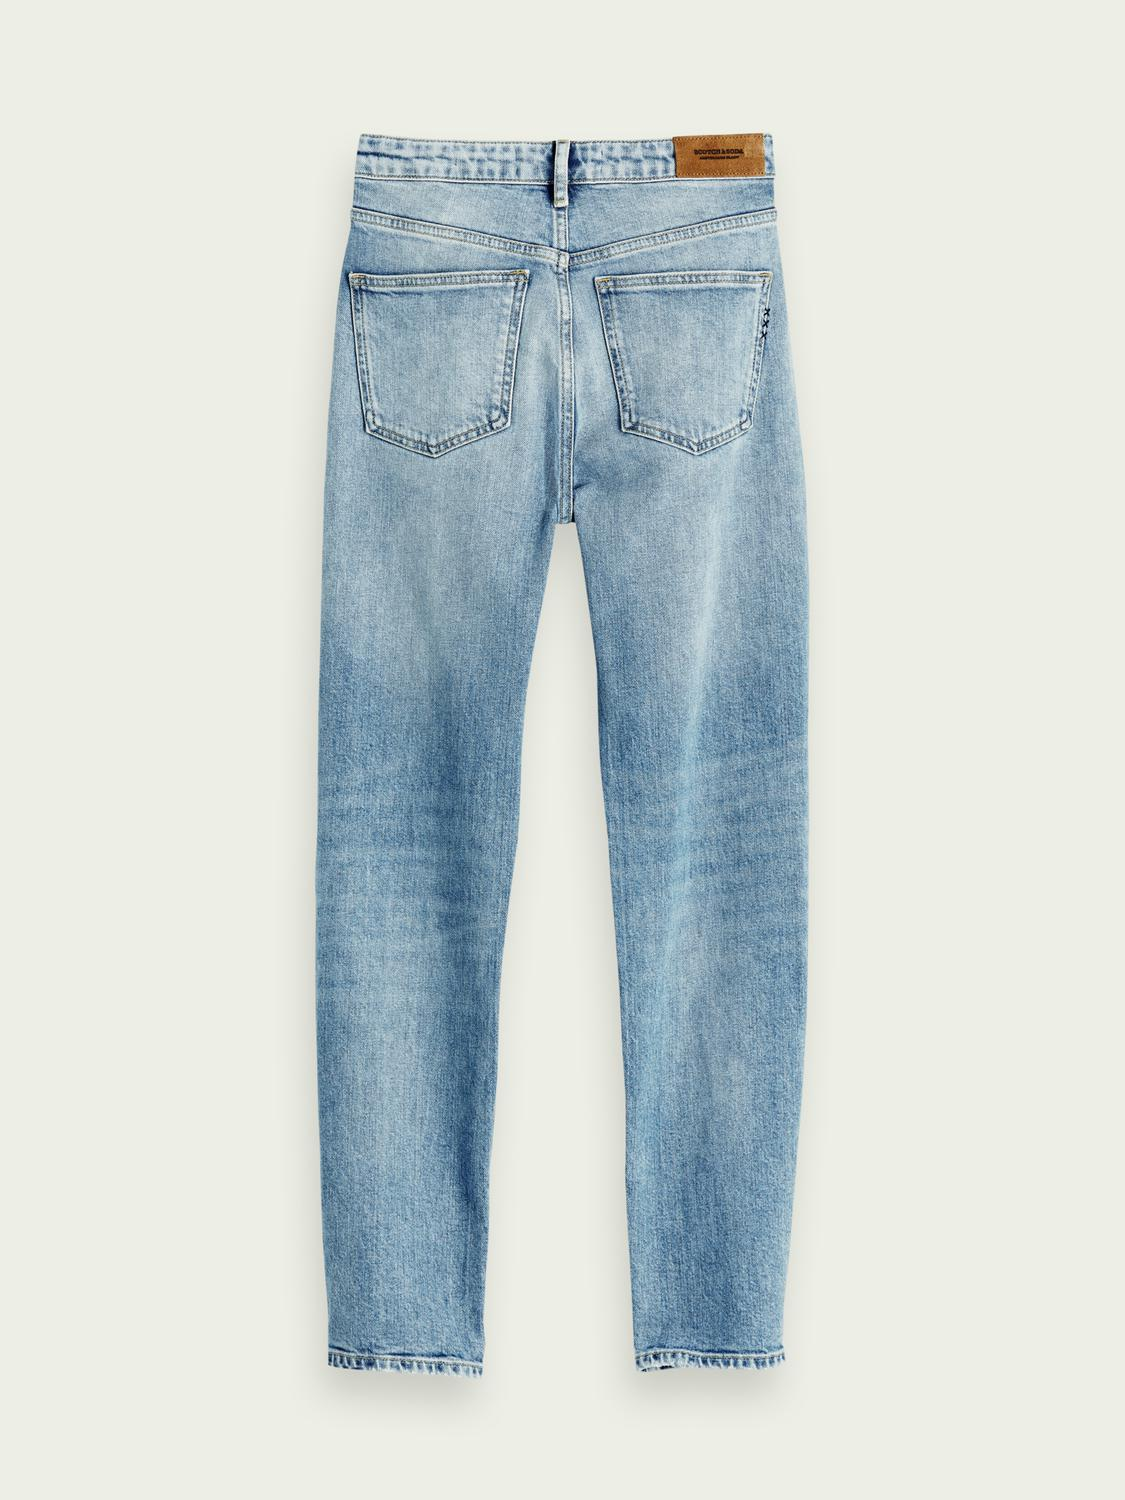 The Keeper - Turquoise Mid rise slim fit 6